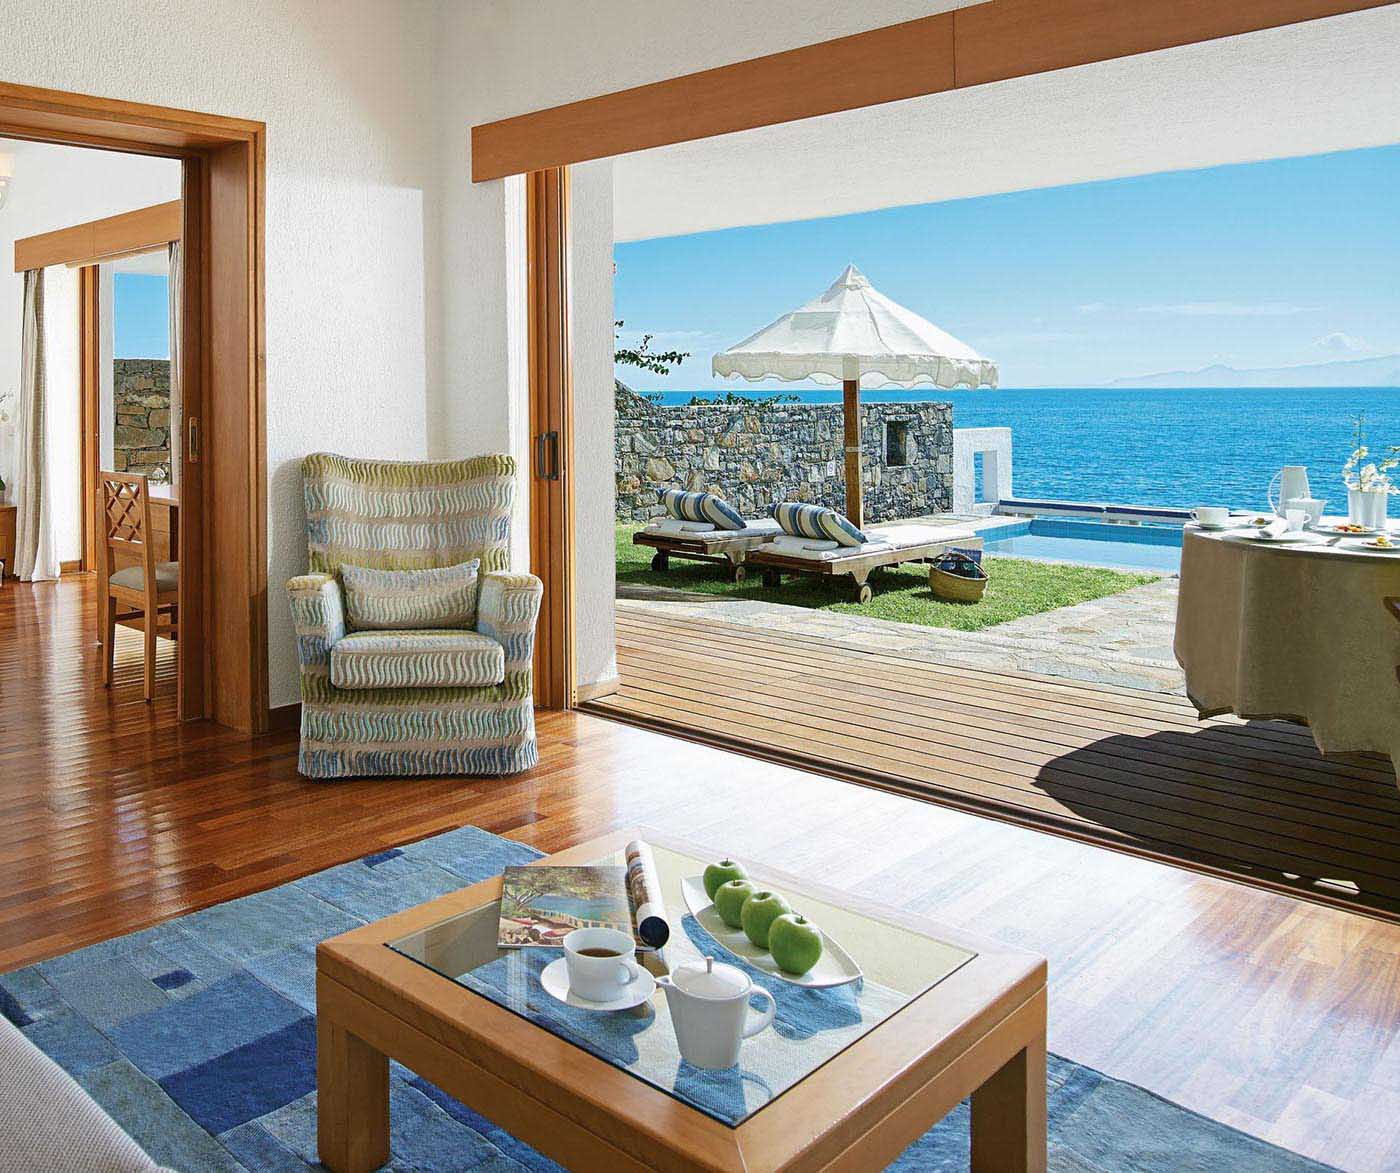 Heraklion hotels & resorts, 50% discount for early bookings, Heraklion, Crete, Greece